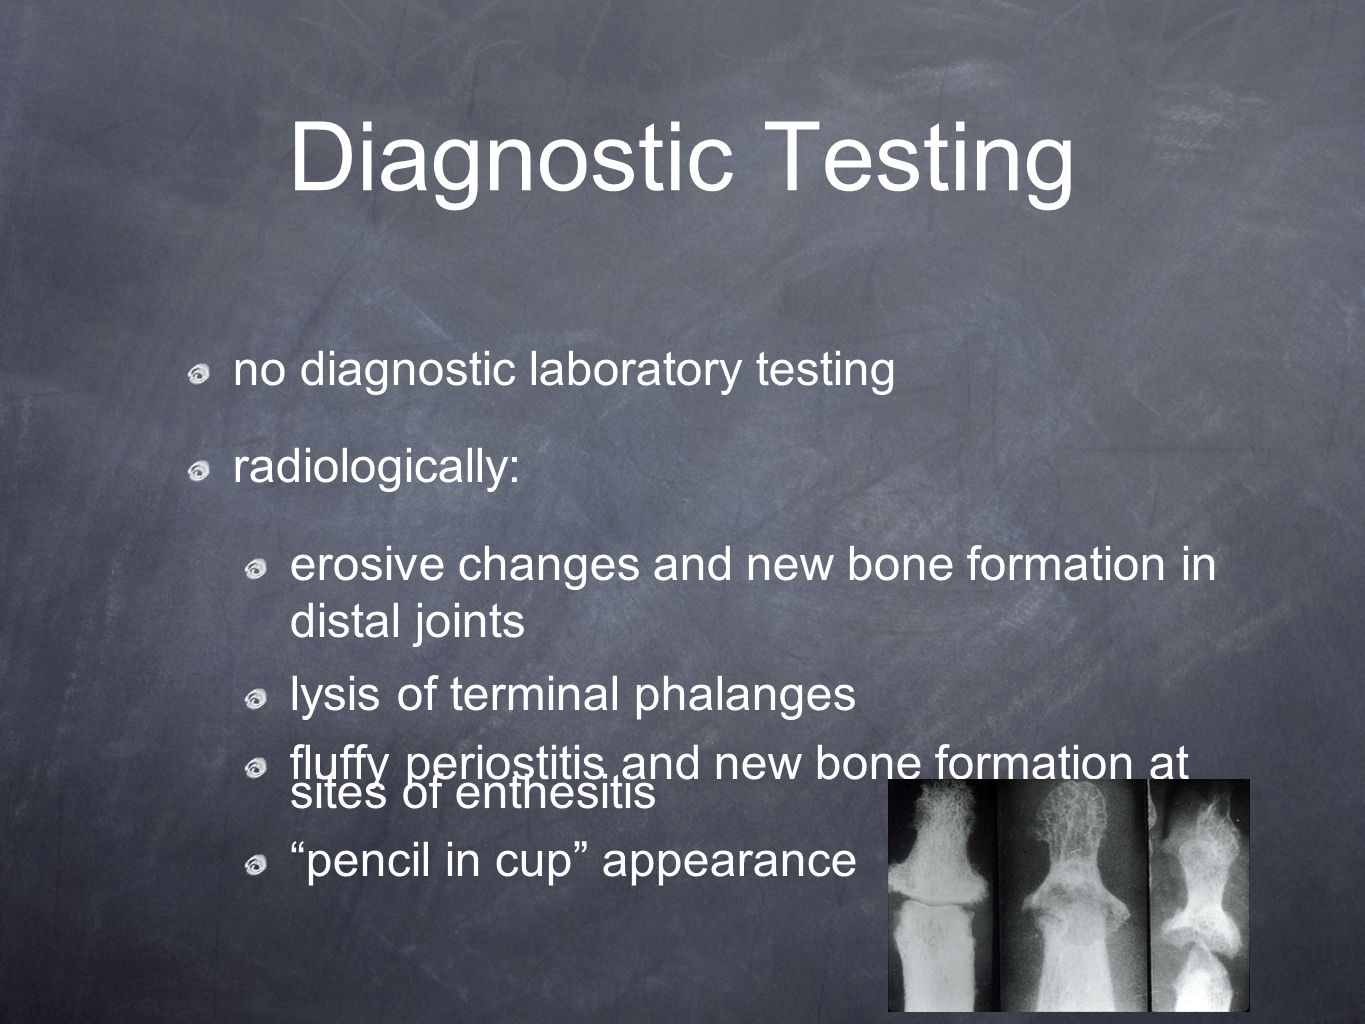 Diagnostic Testing no diagnostic laboratory testing radiologically: erosive changes and new bone formation in distal joints lysis of terminal phalange